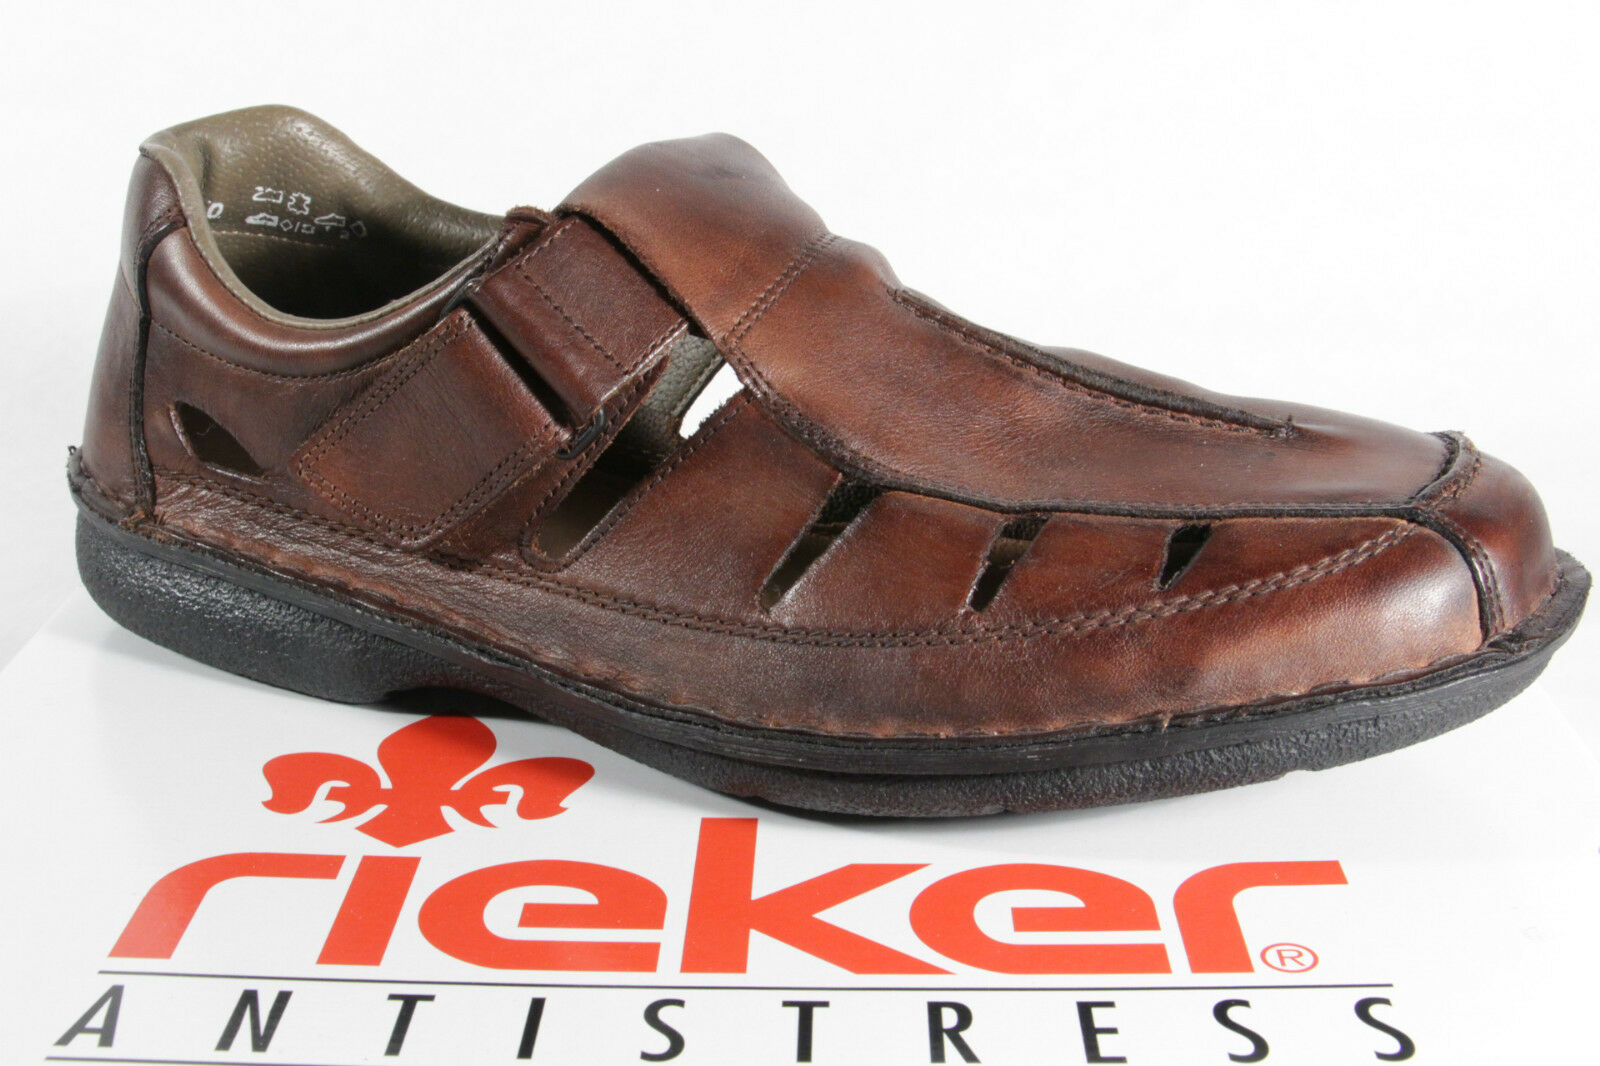 Rieker Slippers Sneakers Low shoes Brown Soft Leather Insole New